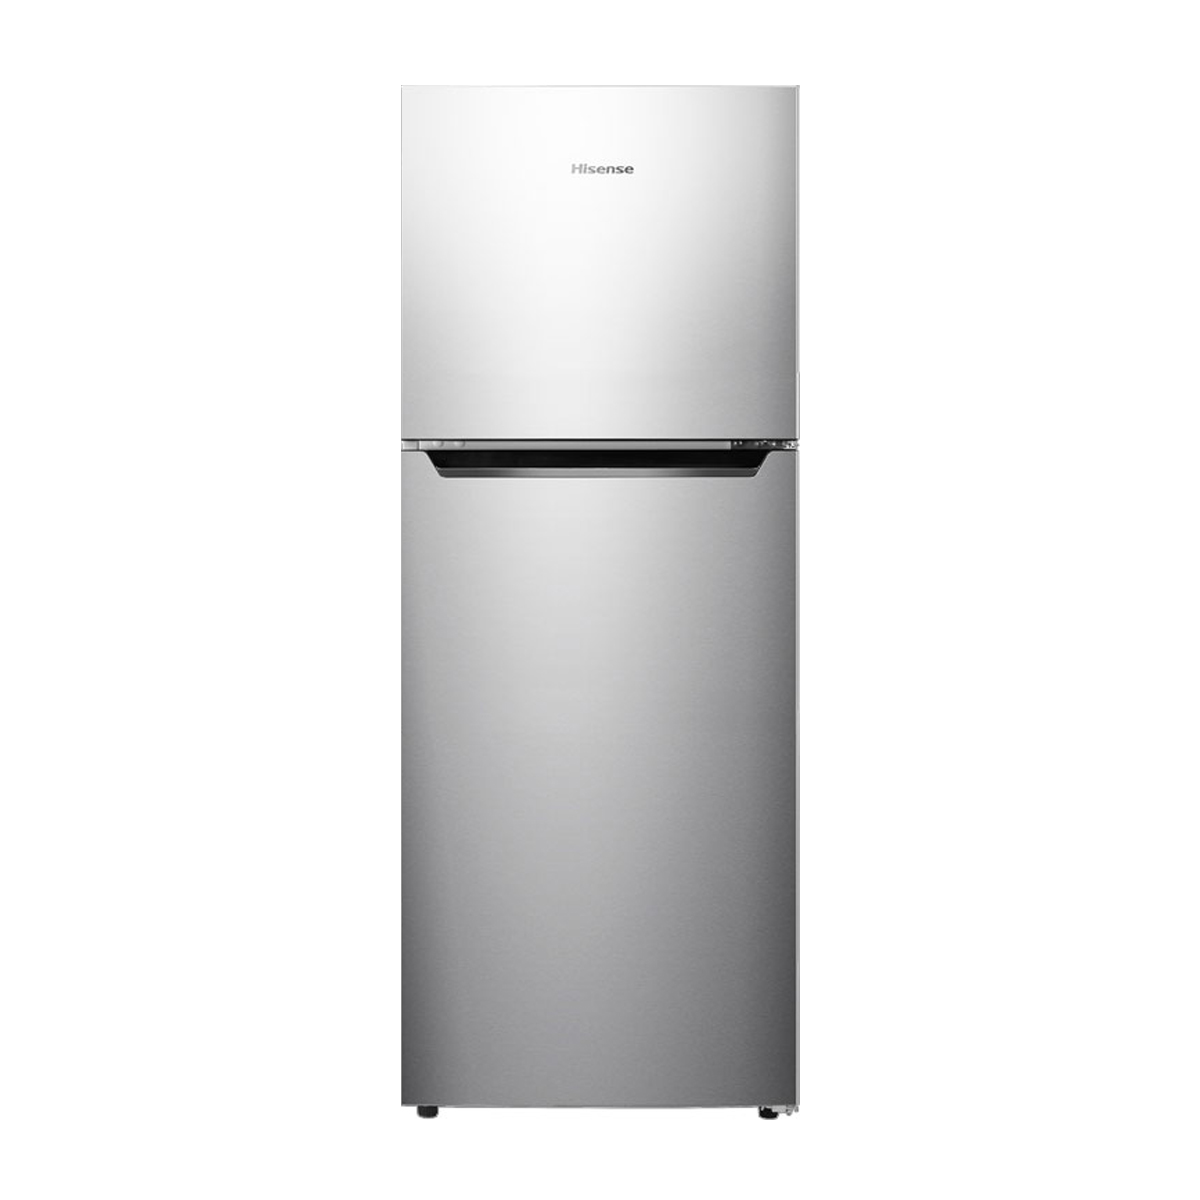 Hisense HR6TFF230S 230L Top Mount Fridge